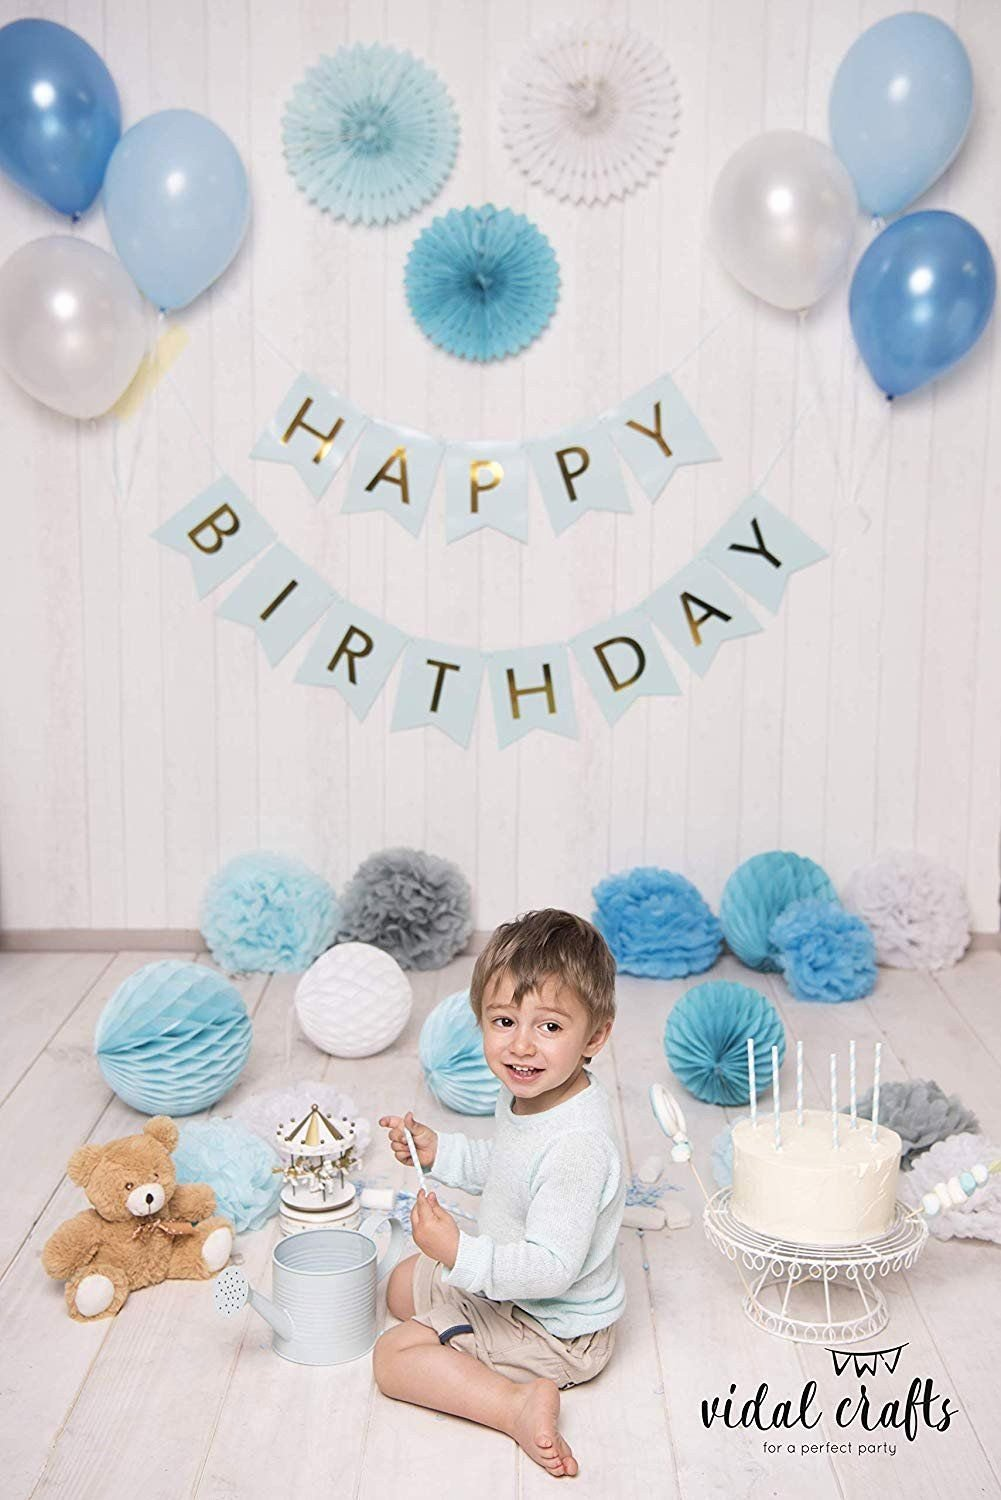 Latest Birthday Decoration Ideas at Home Best Of Birthday Decoration Ideas at Home with Balloons Fresh Boy